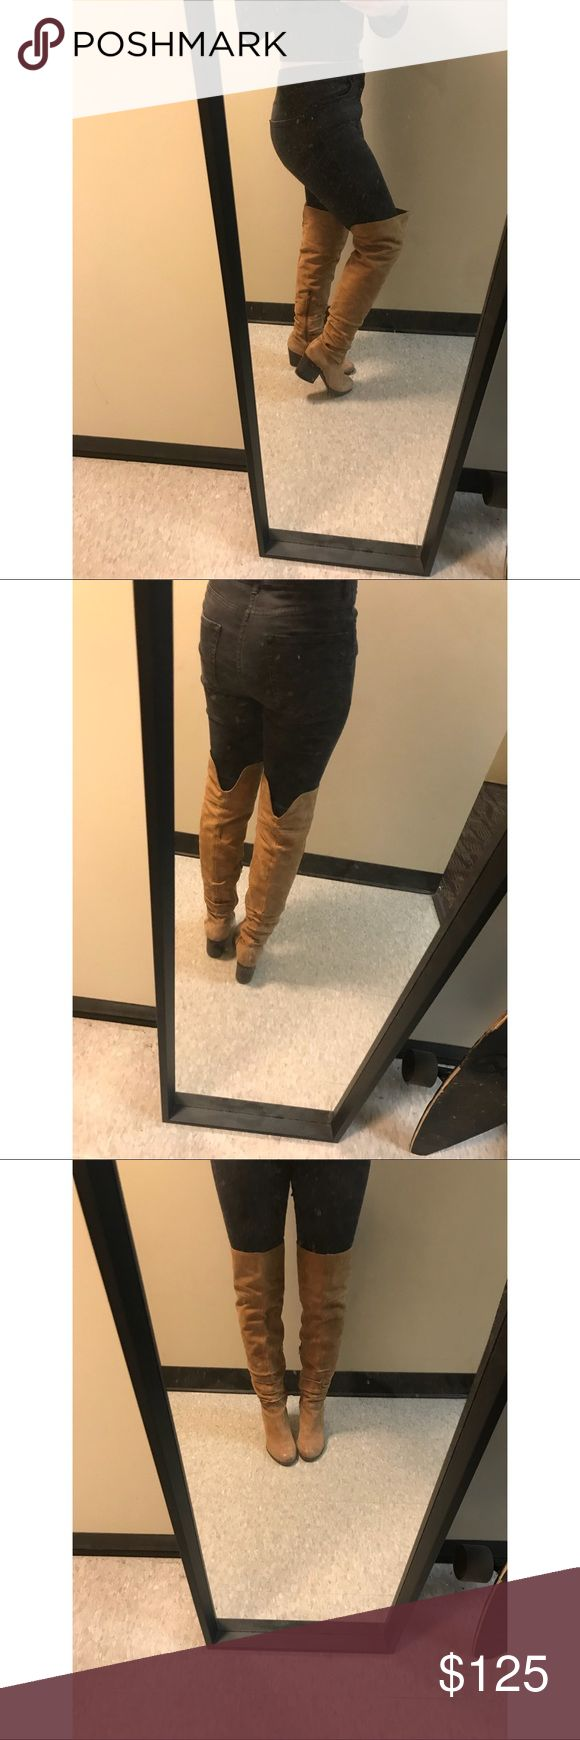 Aldo Thigh high boots My favorite pair of thigh highs! They are genuine leather from Aldo. I have only worn these 6-7 times. They don't feel too high because of the chunky heel! Aldo Shoes Over the Knee Boots